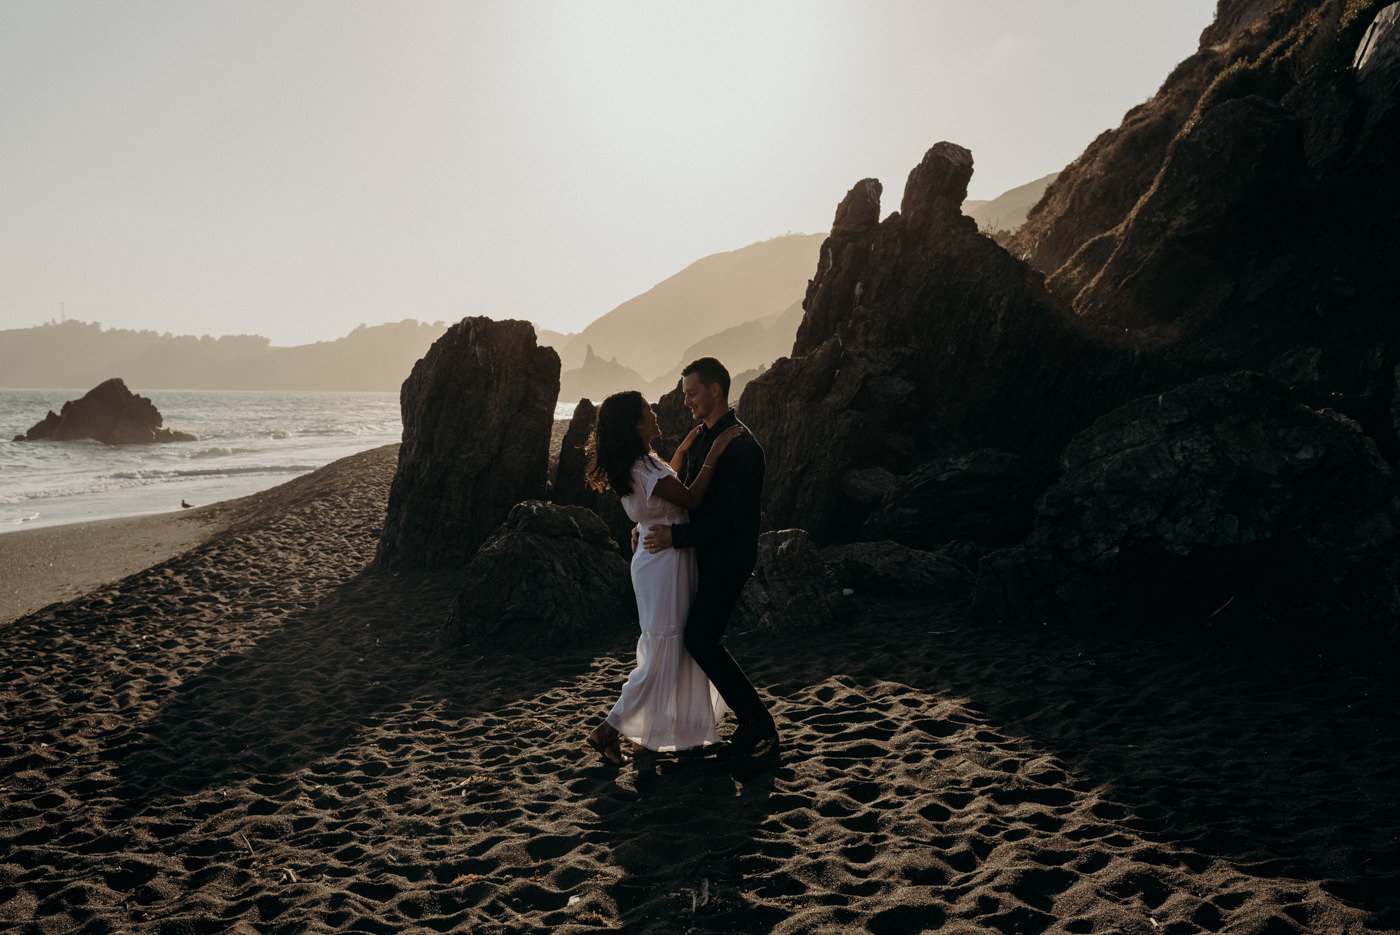 Dancing in the setting sun light on the beach during this Marin Headlands engagement shoot